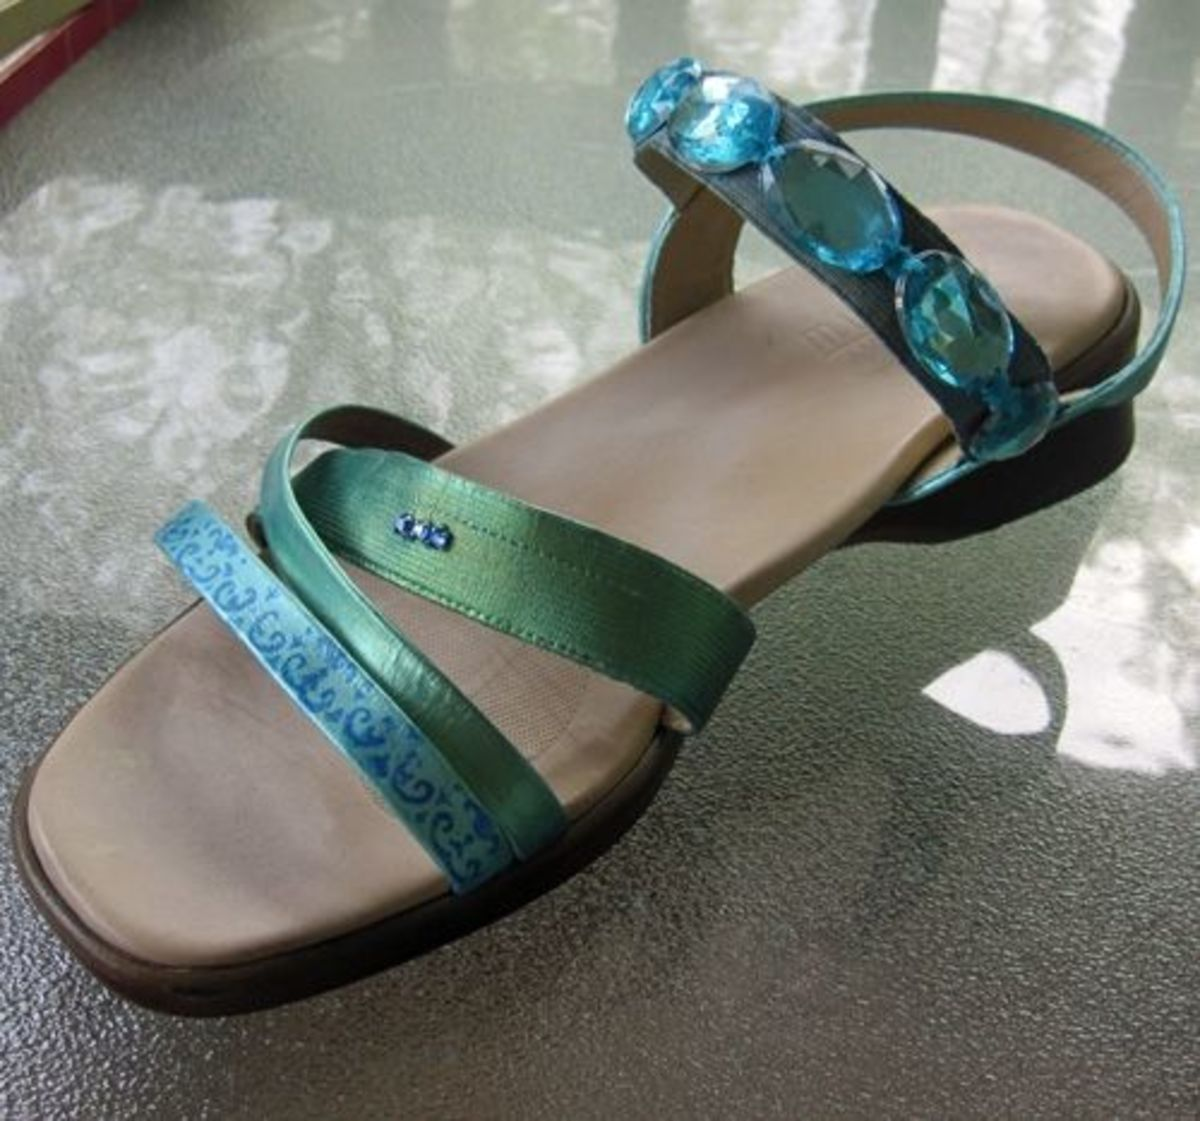 Aqua faux jewels sewn onto the stretched-out elastic strap.